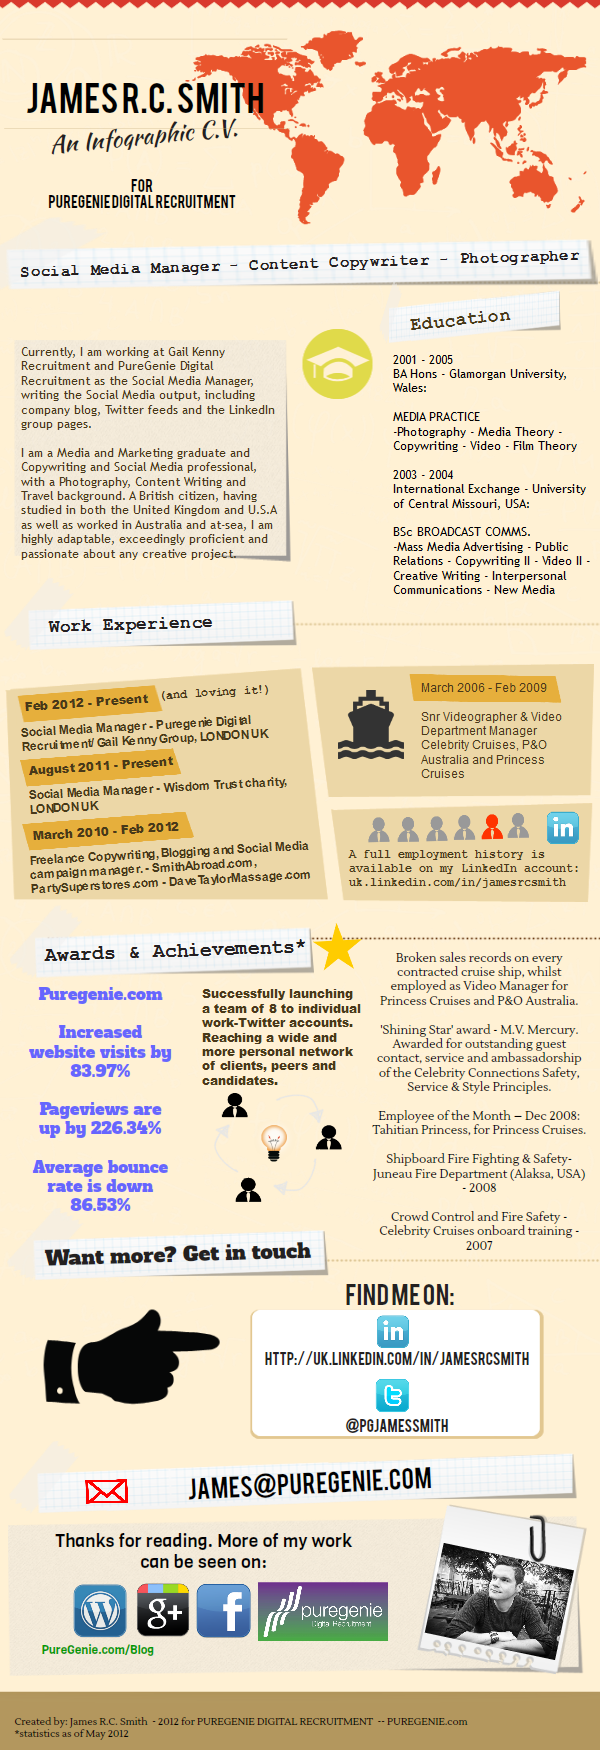 best images about creative cv infographic 17 best images about creative cv infographic resume creative resume and cv design